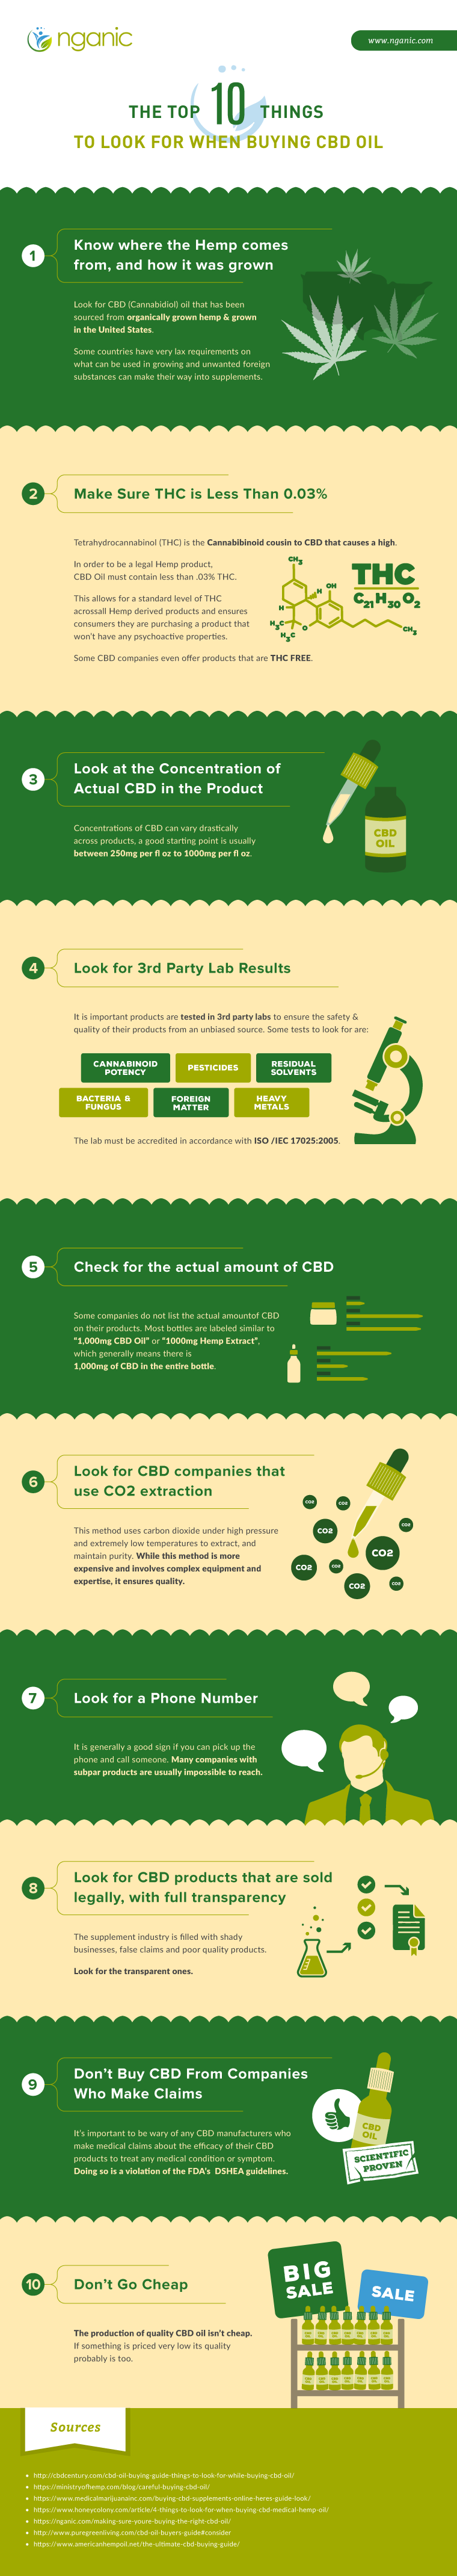 Top 10 Tips When Buying CBD Oil